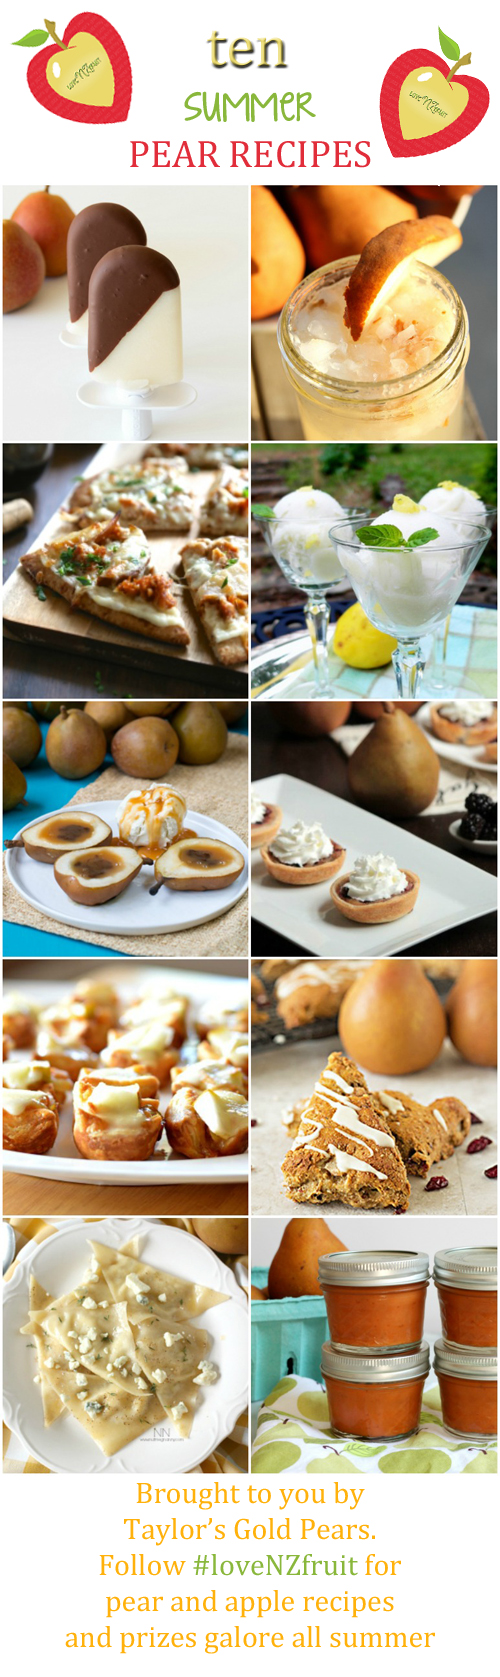 Taylors-Gold-Pears-Recipe-Collage